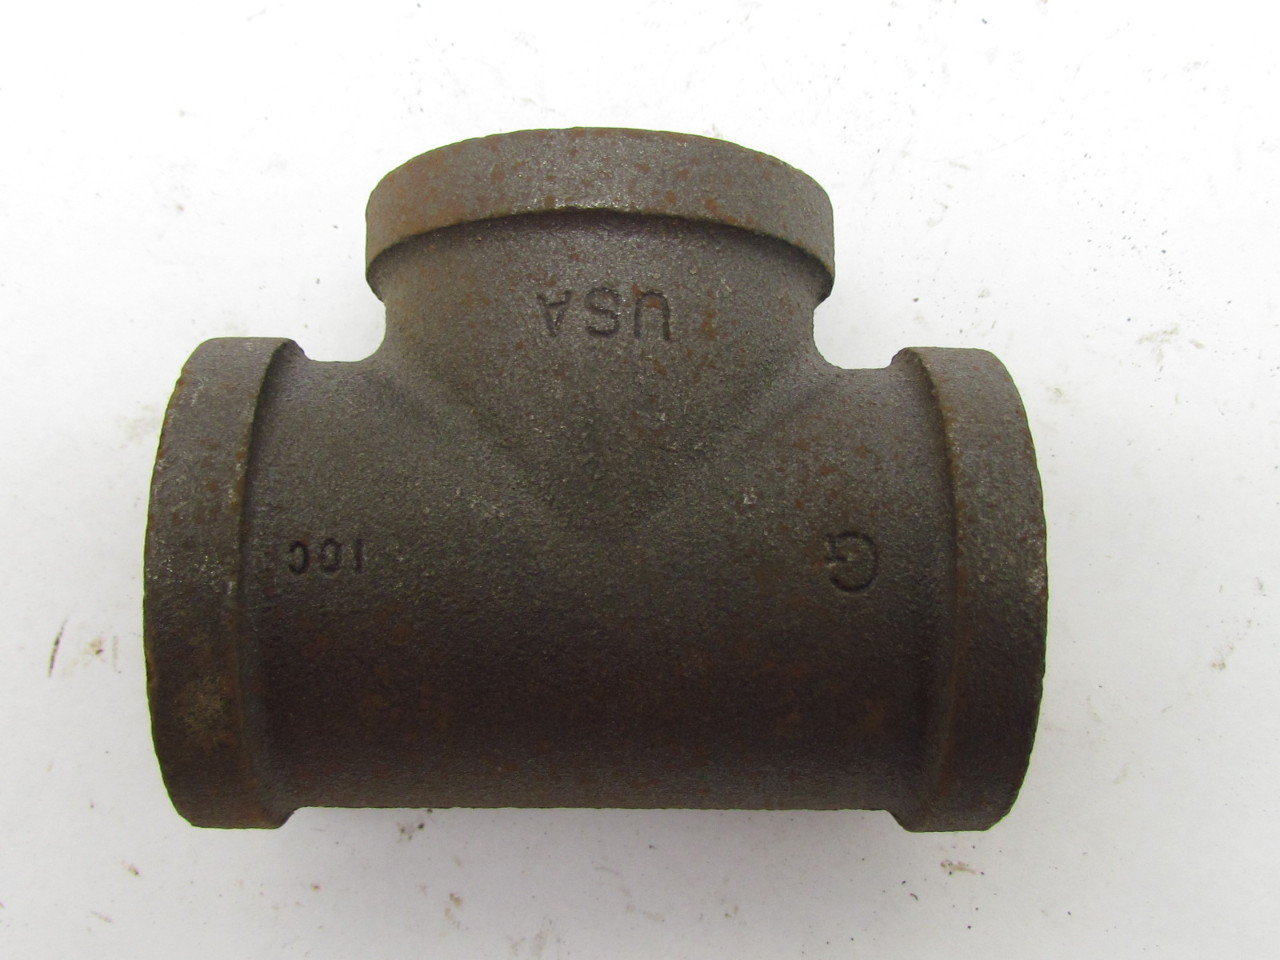 Grinnell quot npt malleable iron tee pipe fitting class